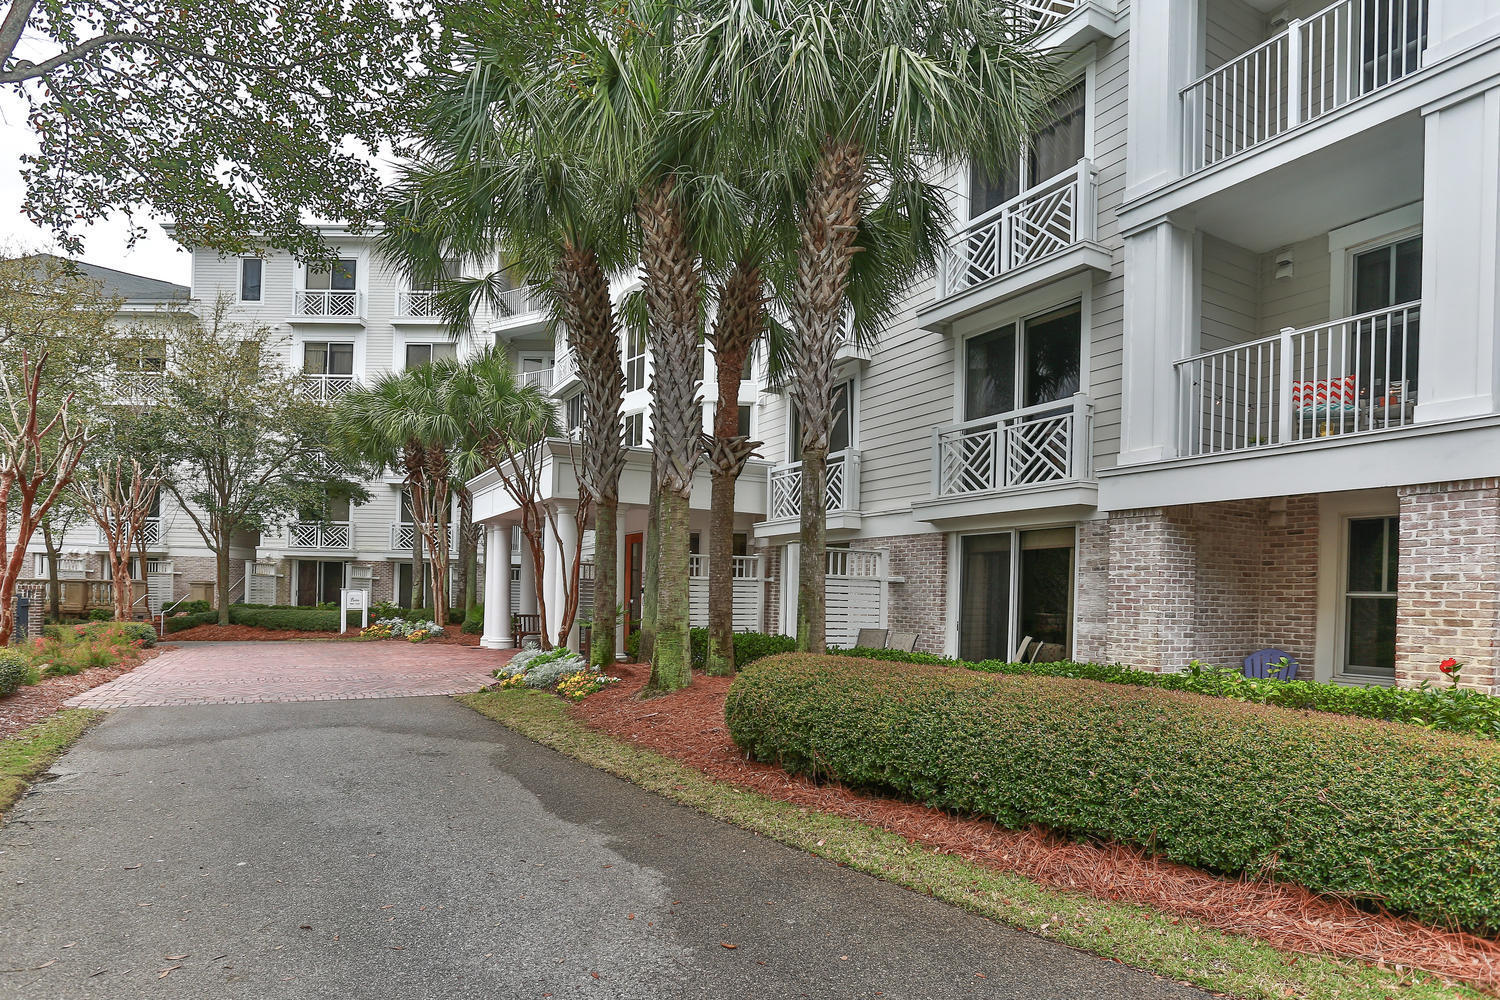 This BAY FRONT condo has impressive views from bedroom , living area and balcony. This condo has new bedroom set and headboard as well as top of the line King Mattress. This would make a fantastic investment property, Its walking distance to Baytowne and Marina.  Sandestin also offers a wide range of amenities golf, tennis, kayaking and shopping just to name a few.  We also boast some of the nicest restaurants all within walking distance or a tram ride.